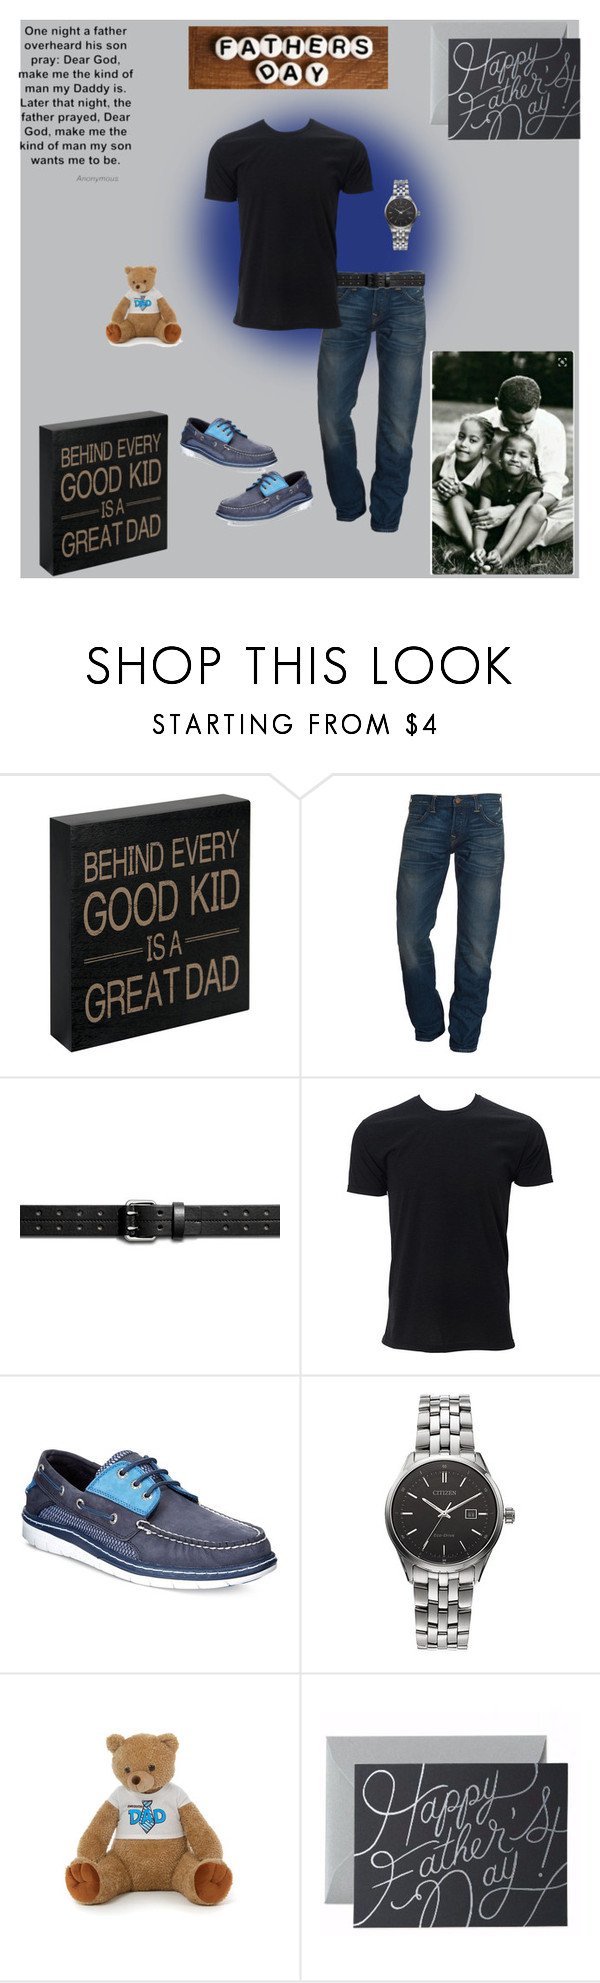 """""""👨👨👧👦 Happy Fathers Day 👨👩👧👦"""" by smith-1979 ❤ liked on Polyvore featuring True Religion, Shinola, Sperry, Citizen, Rifle Paper Co, men's fashion and menswear"""